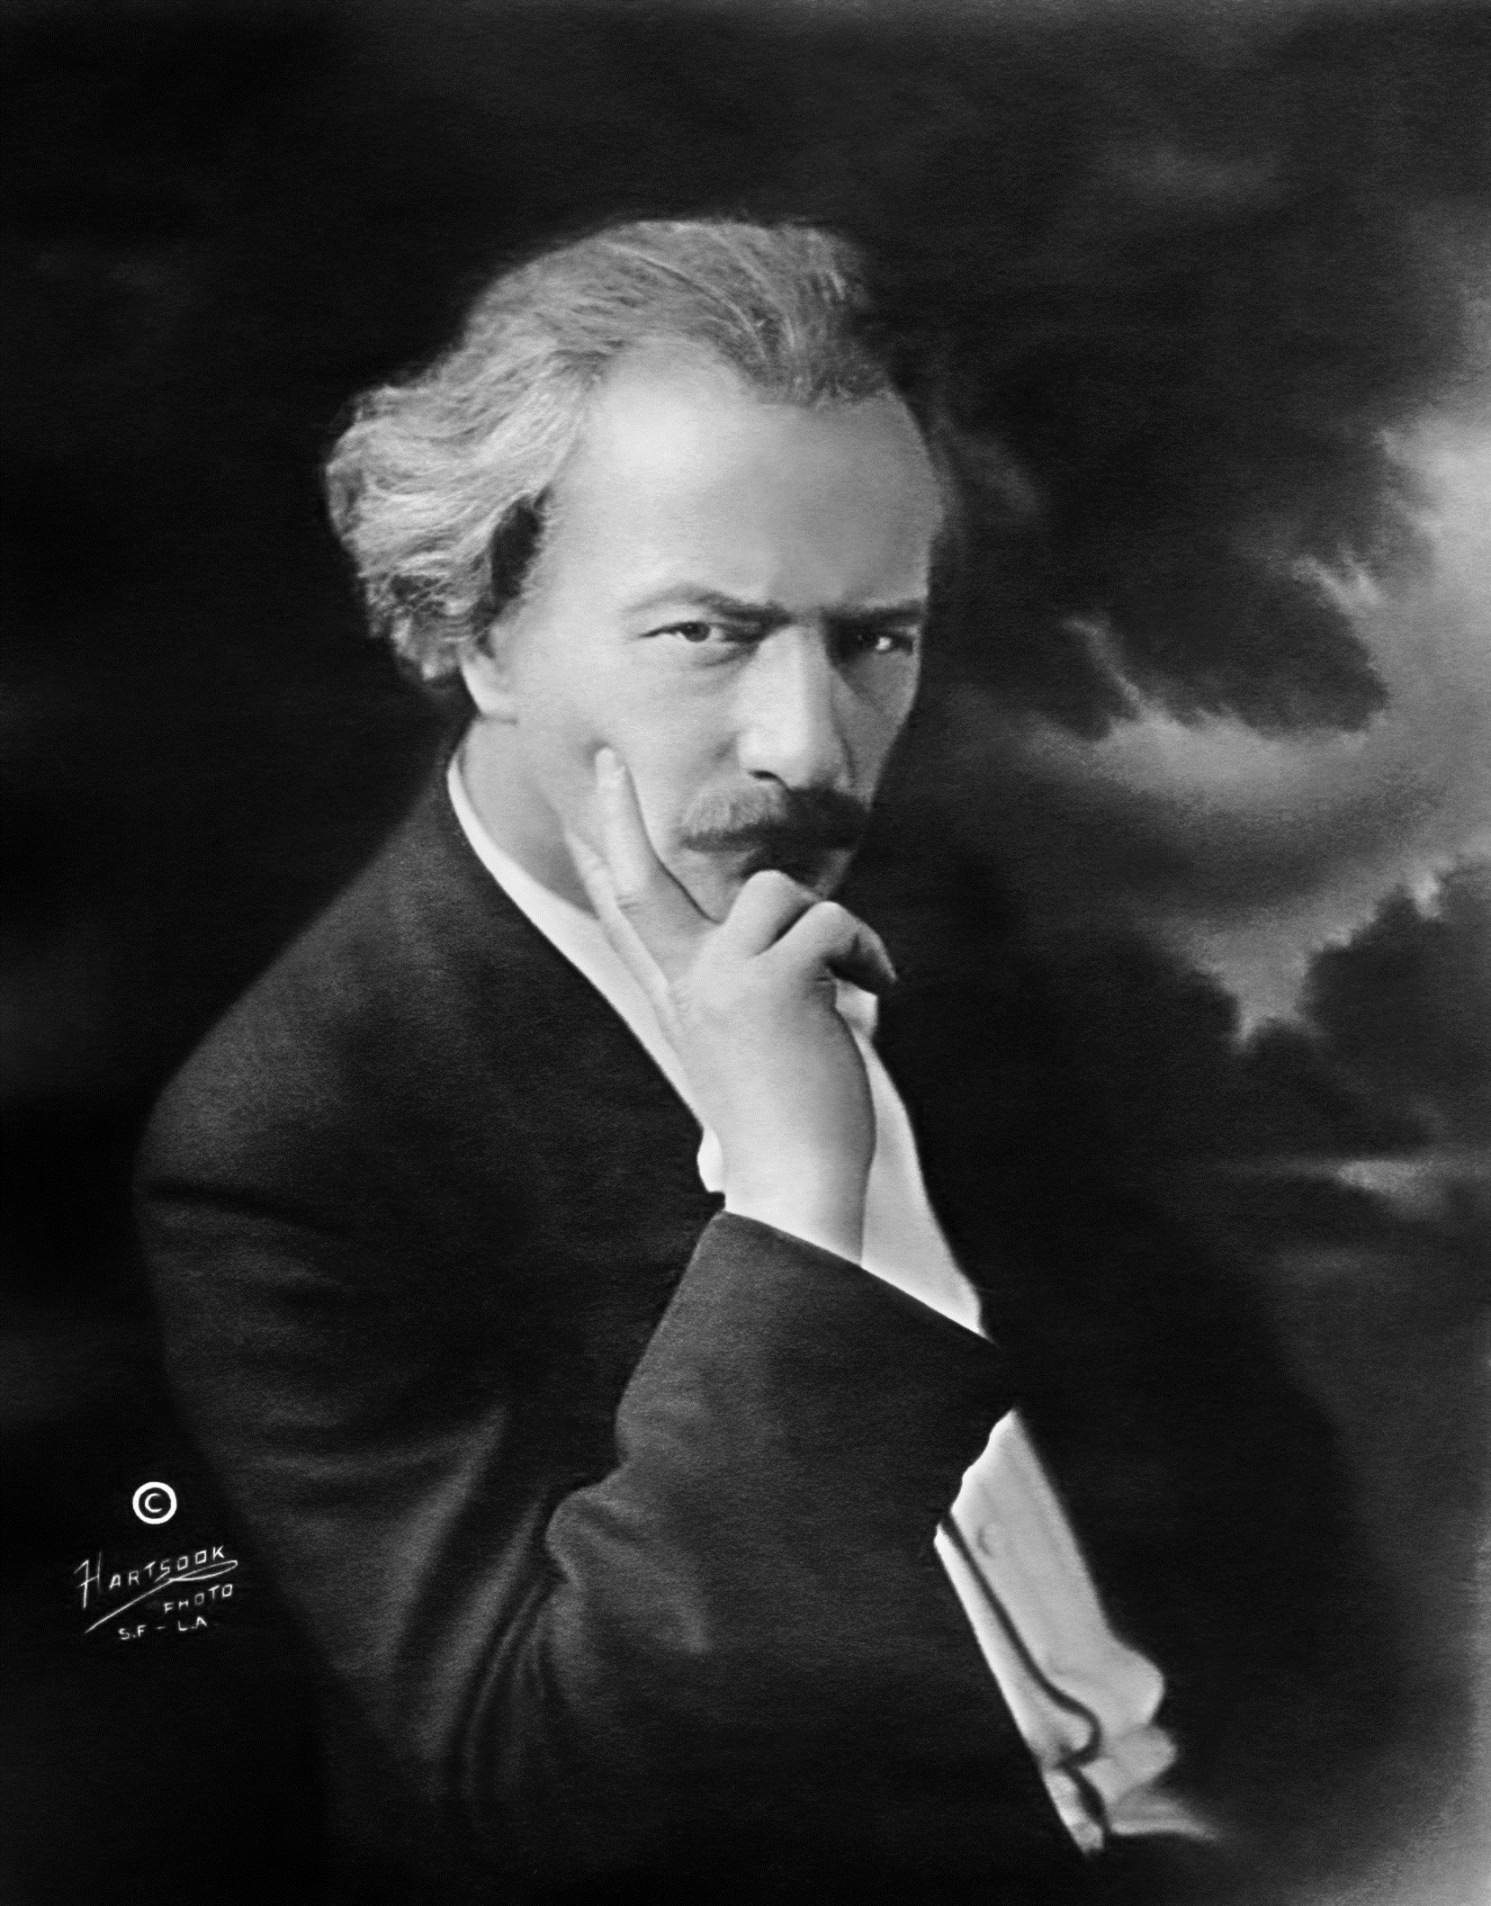 Zhytomyr's installation of monument to Paderewski getting mixed reactions